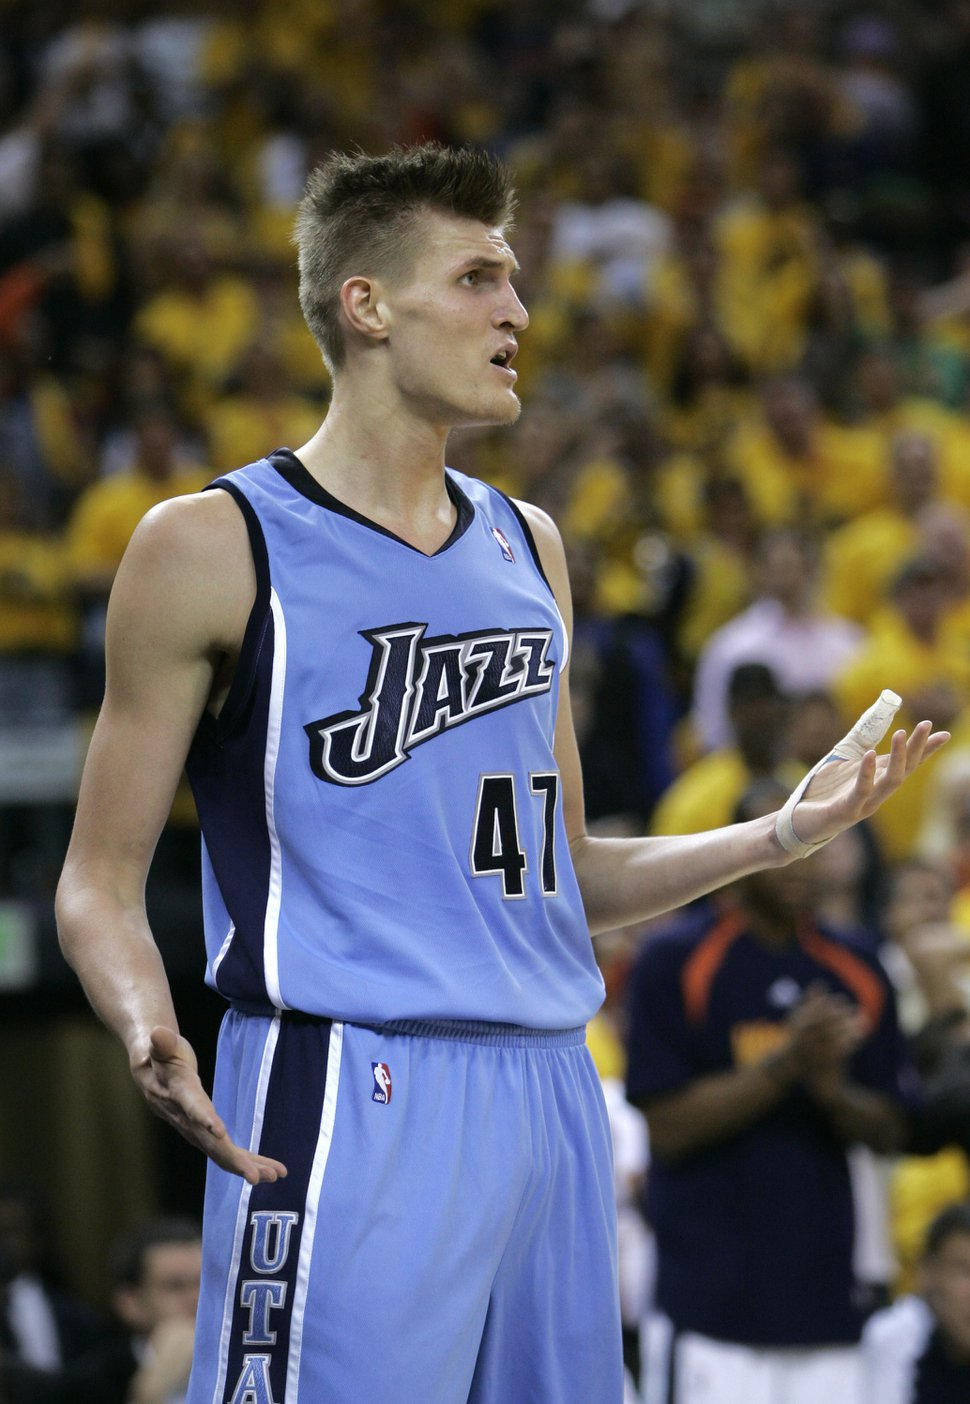 Utah Jazz's Andrei Kirilenko, of Russia, argues with an official's call against the Golden State Warriors in the first half of an NBA Western Conference second-round basketball playoff game on Friday, May 11, 2007, in Oakland, Calif. The Warriors won 125-105. (AP Photo/Jeff Chiu)